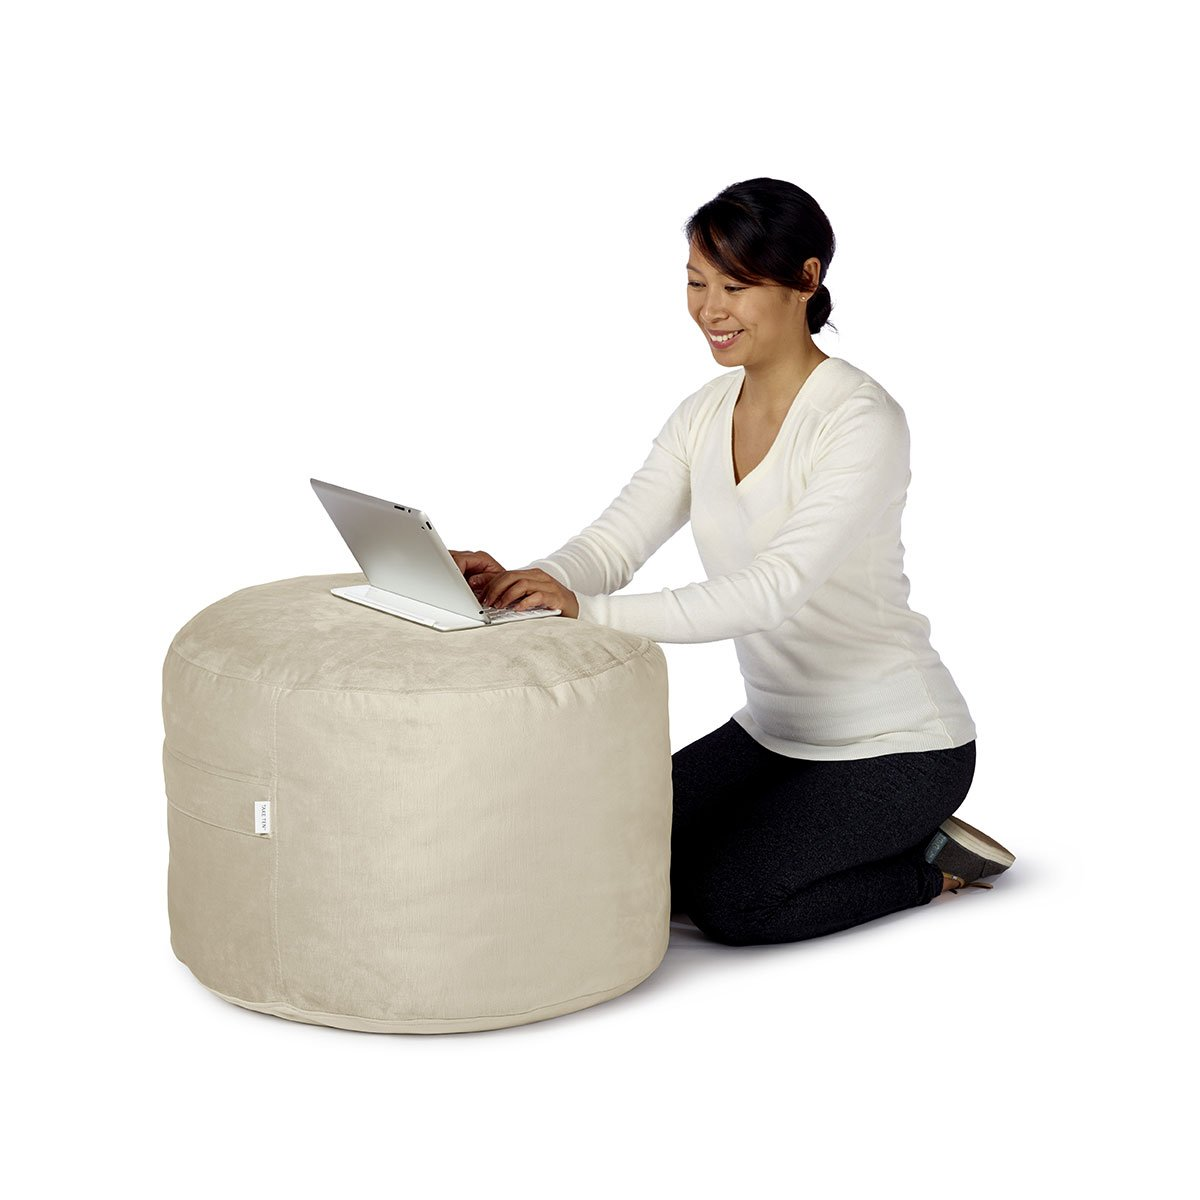 Take Ten Luxury Bean Bag Pouf Ottoman – Multiple Colors / Soft and Comfortable / Doubles as a Foot Rest or Floor Pillow by Take Ten